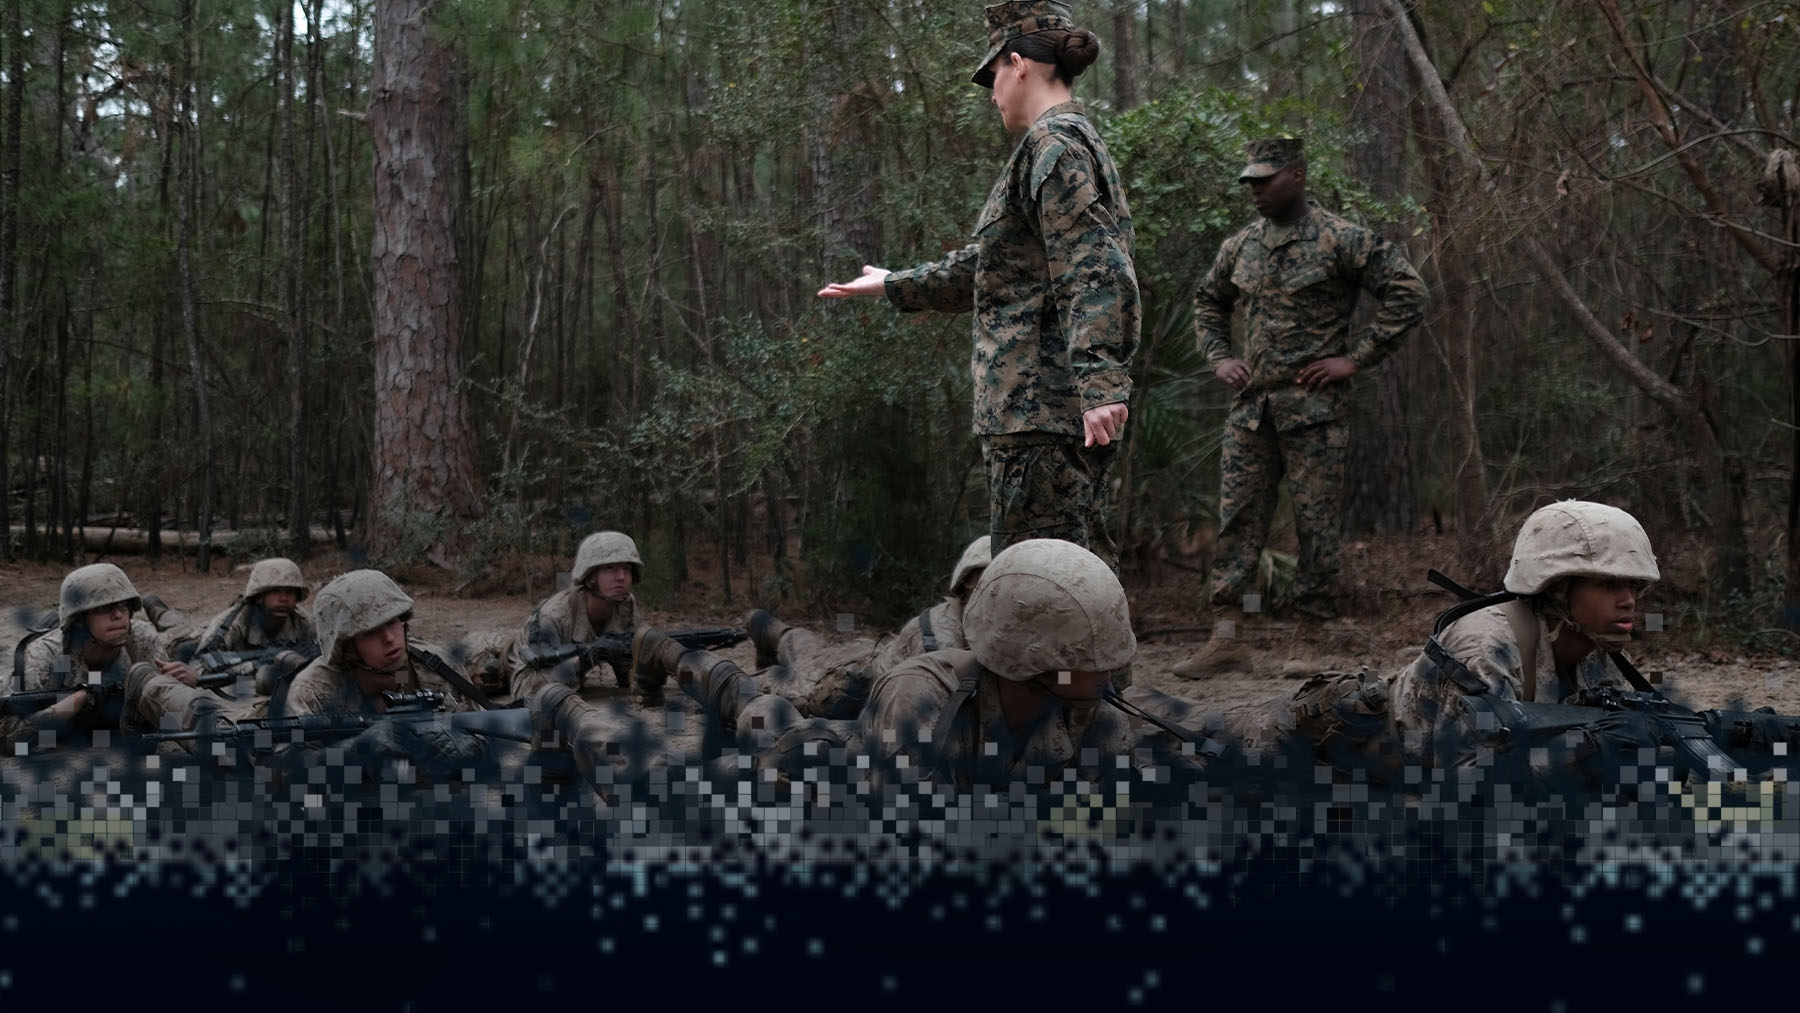 Marine recruits receive instruction from a drill instruction.